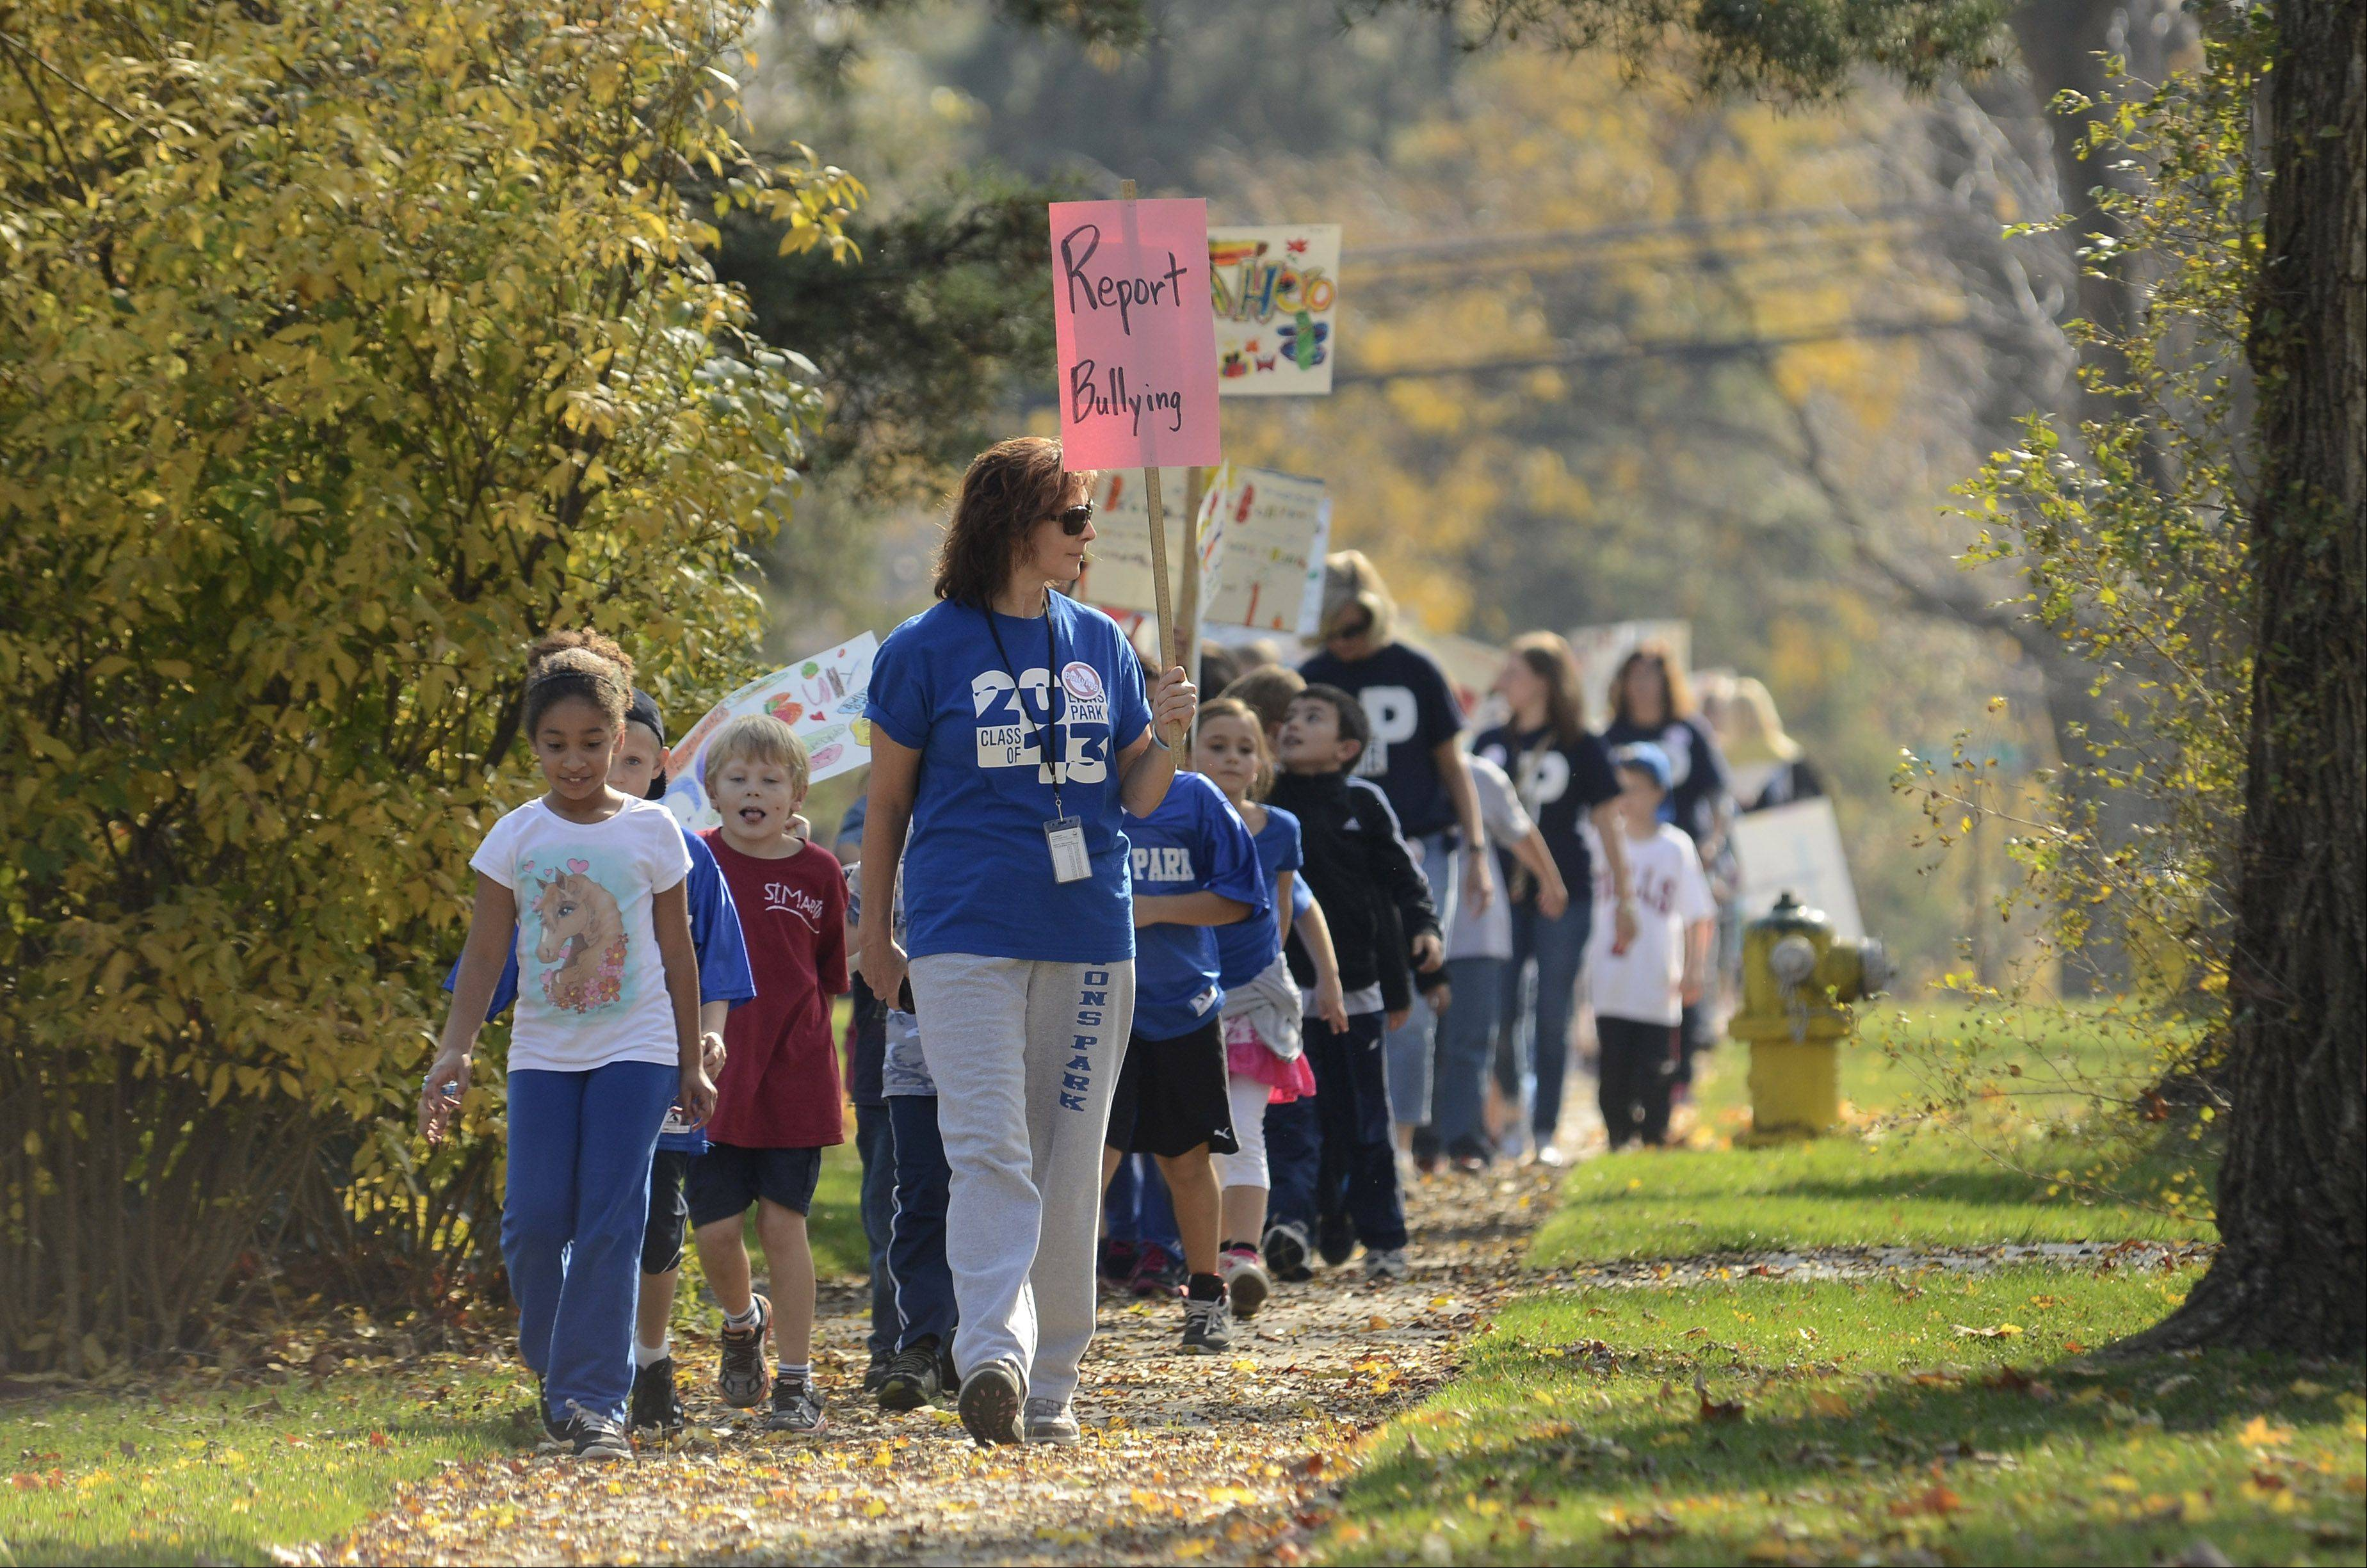 Mount Prospect School District 57 is holding its first Stand Up to Bullying Week. As part of the week's events, students and staff members of Lions Park School marched from the school to downtown Mount Prospect.